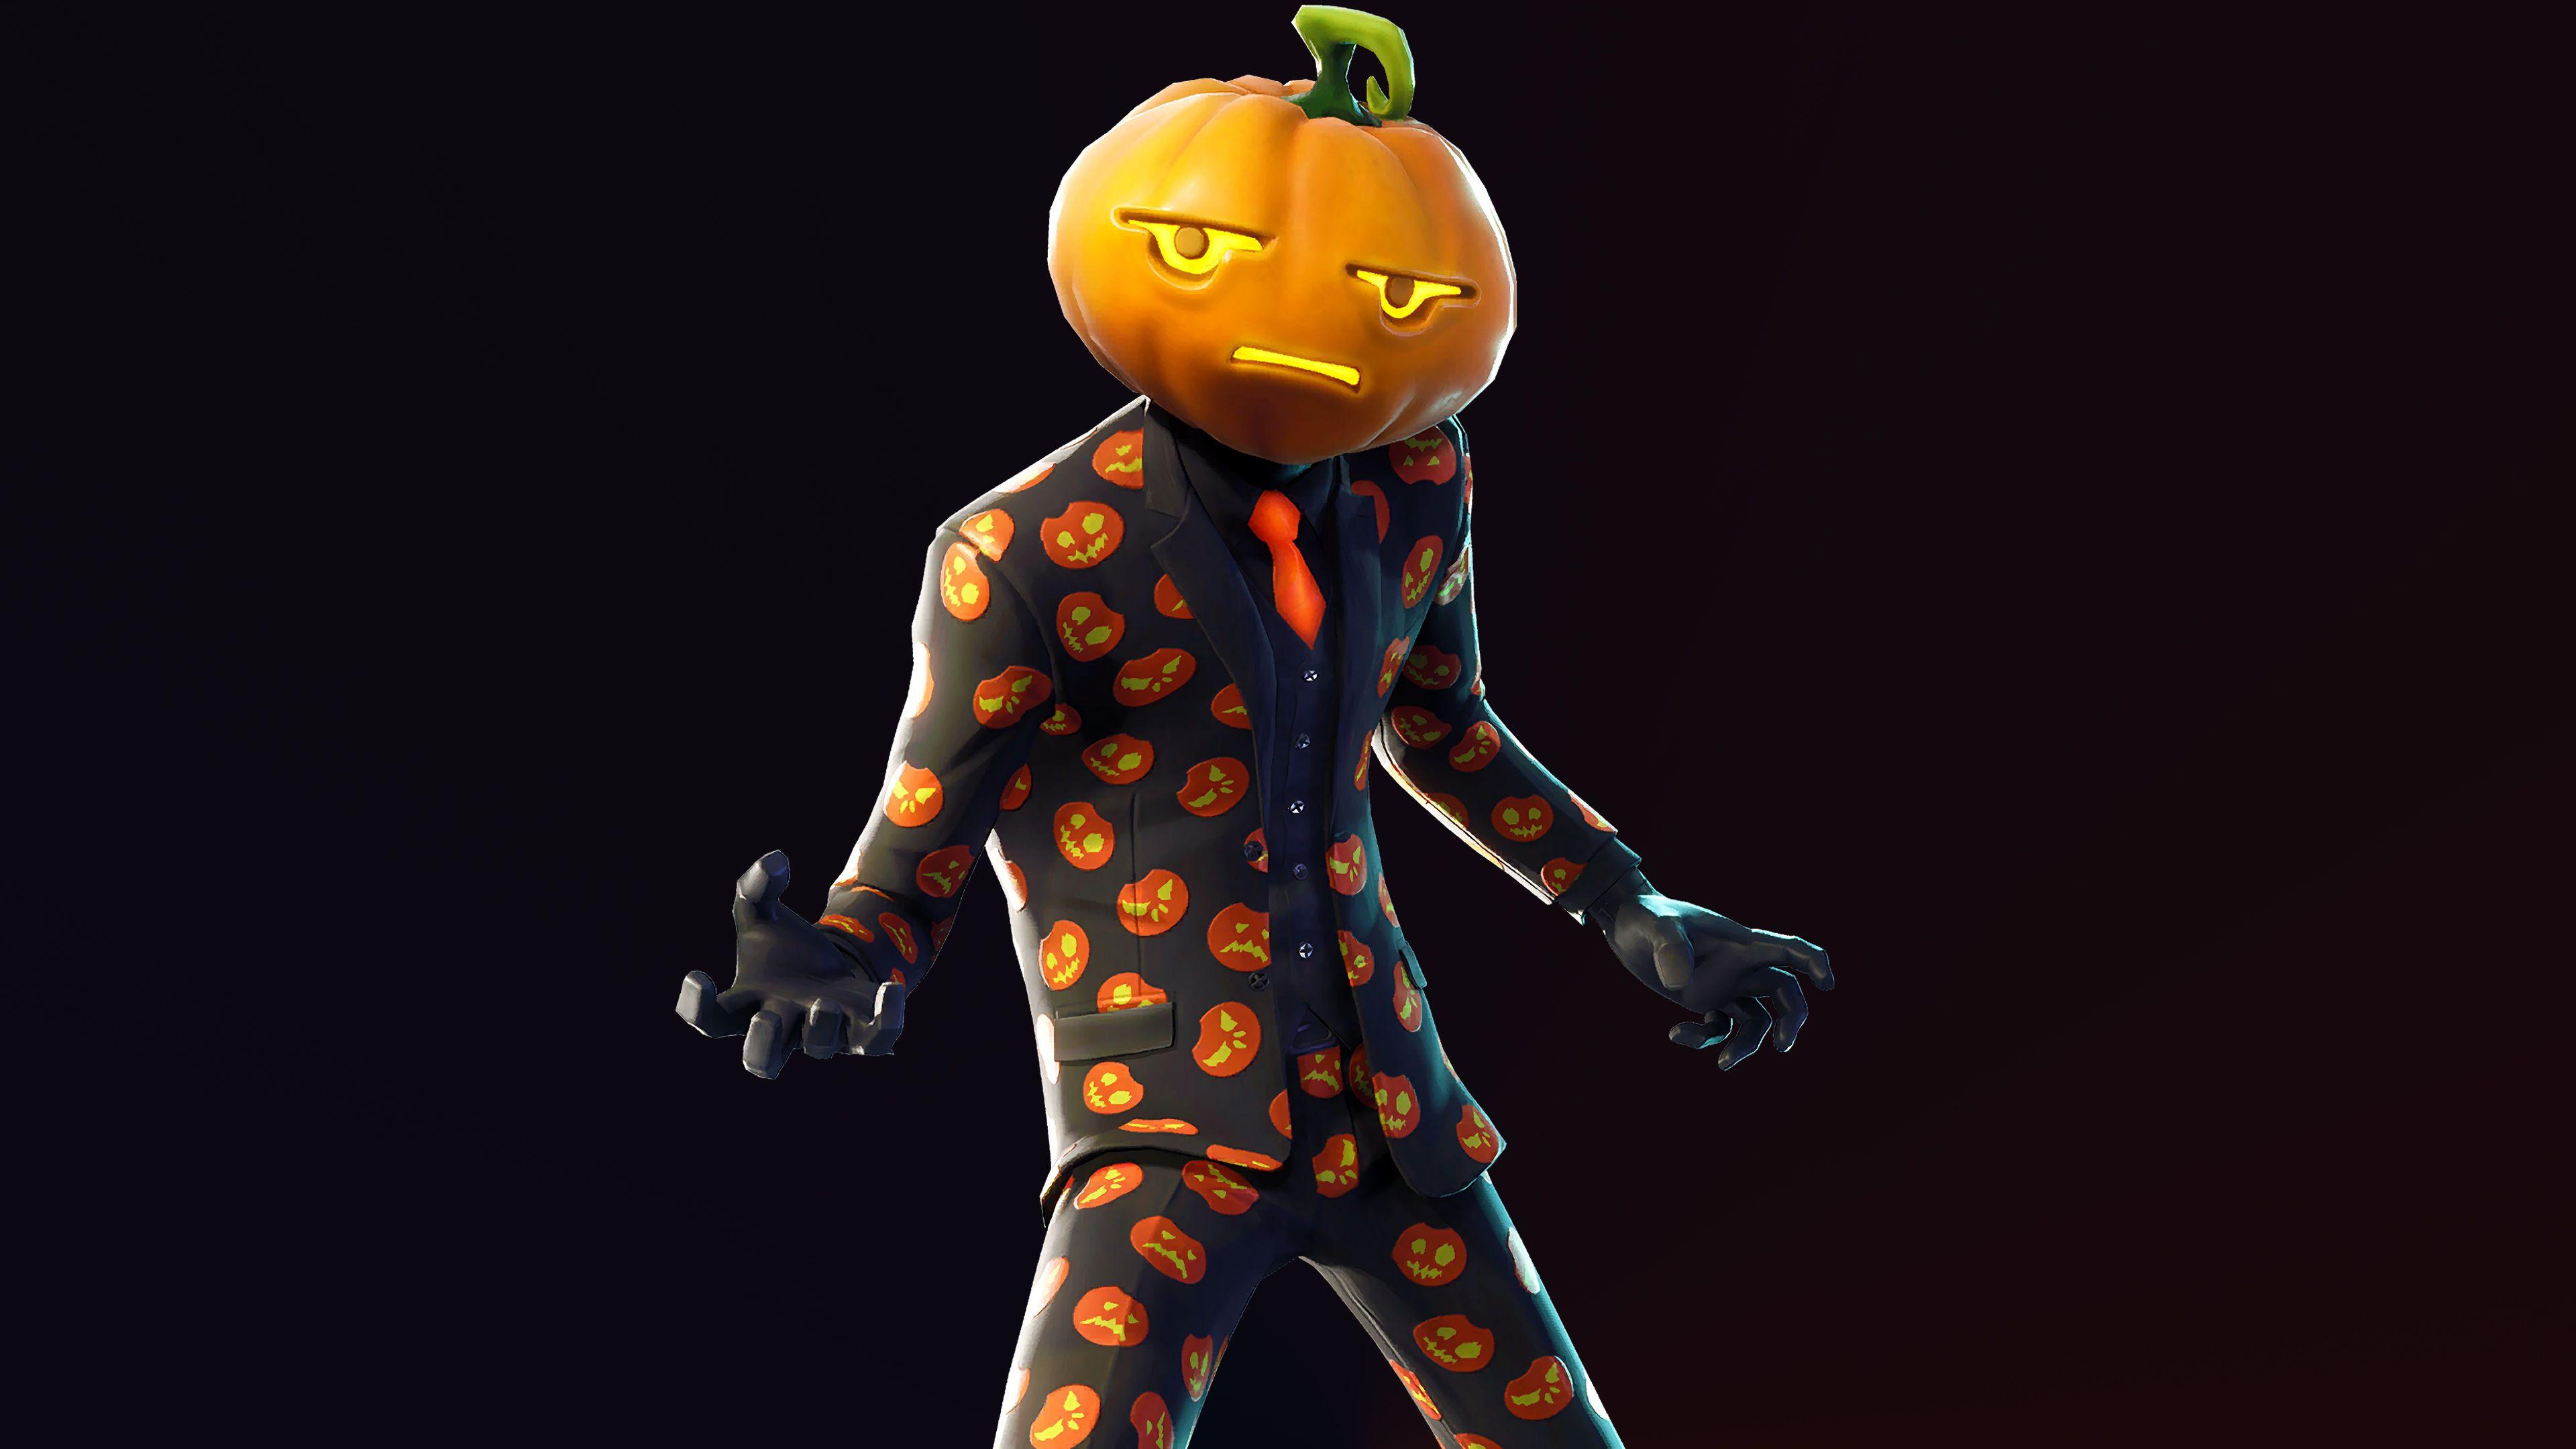 Jack Gourdon In Fortnite Season 6, HD Games, 4k Wallpapers, Images ...